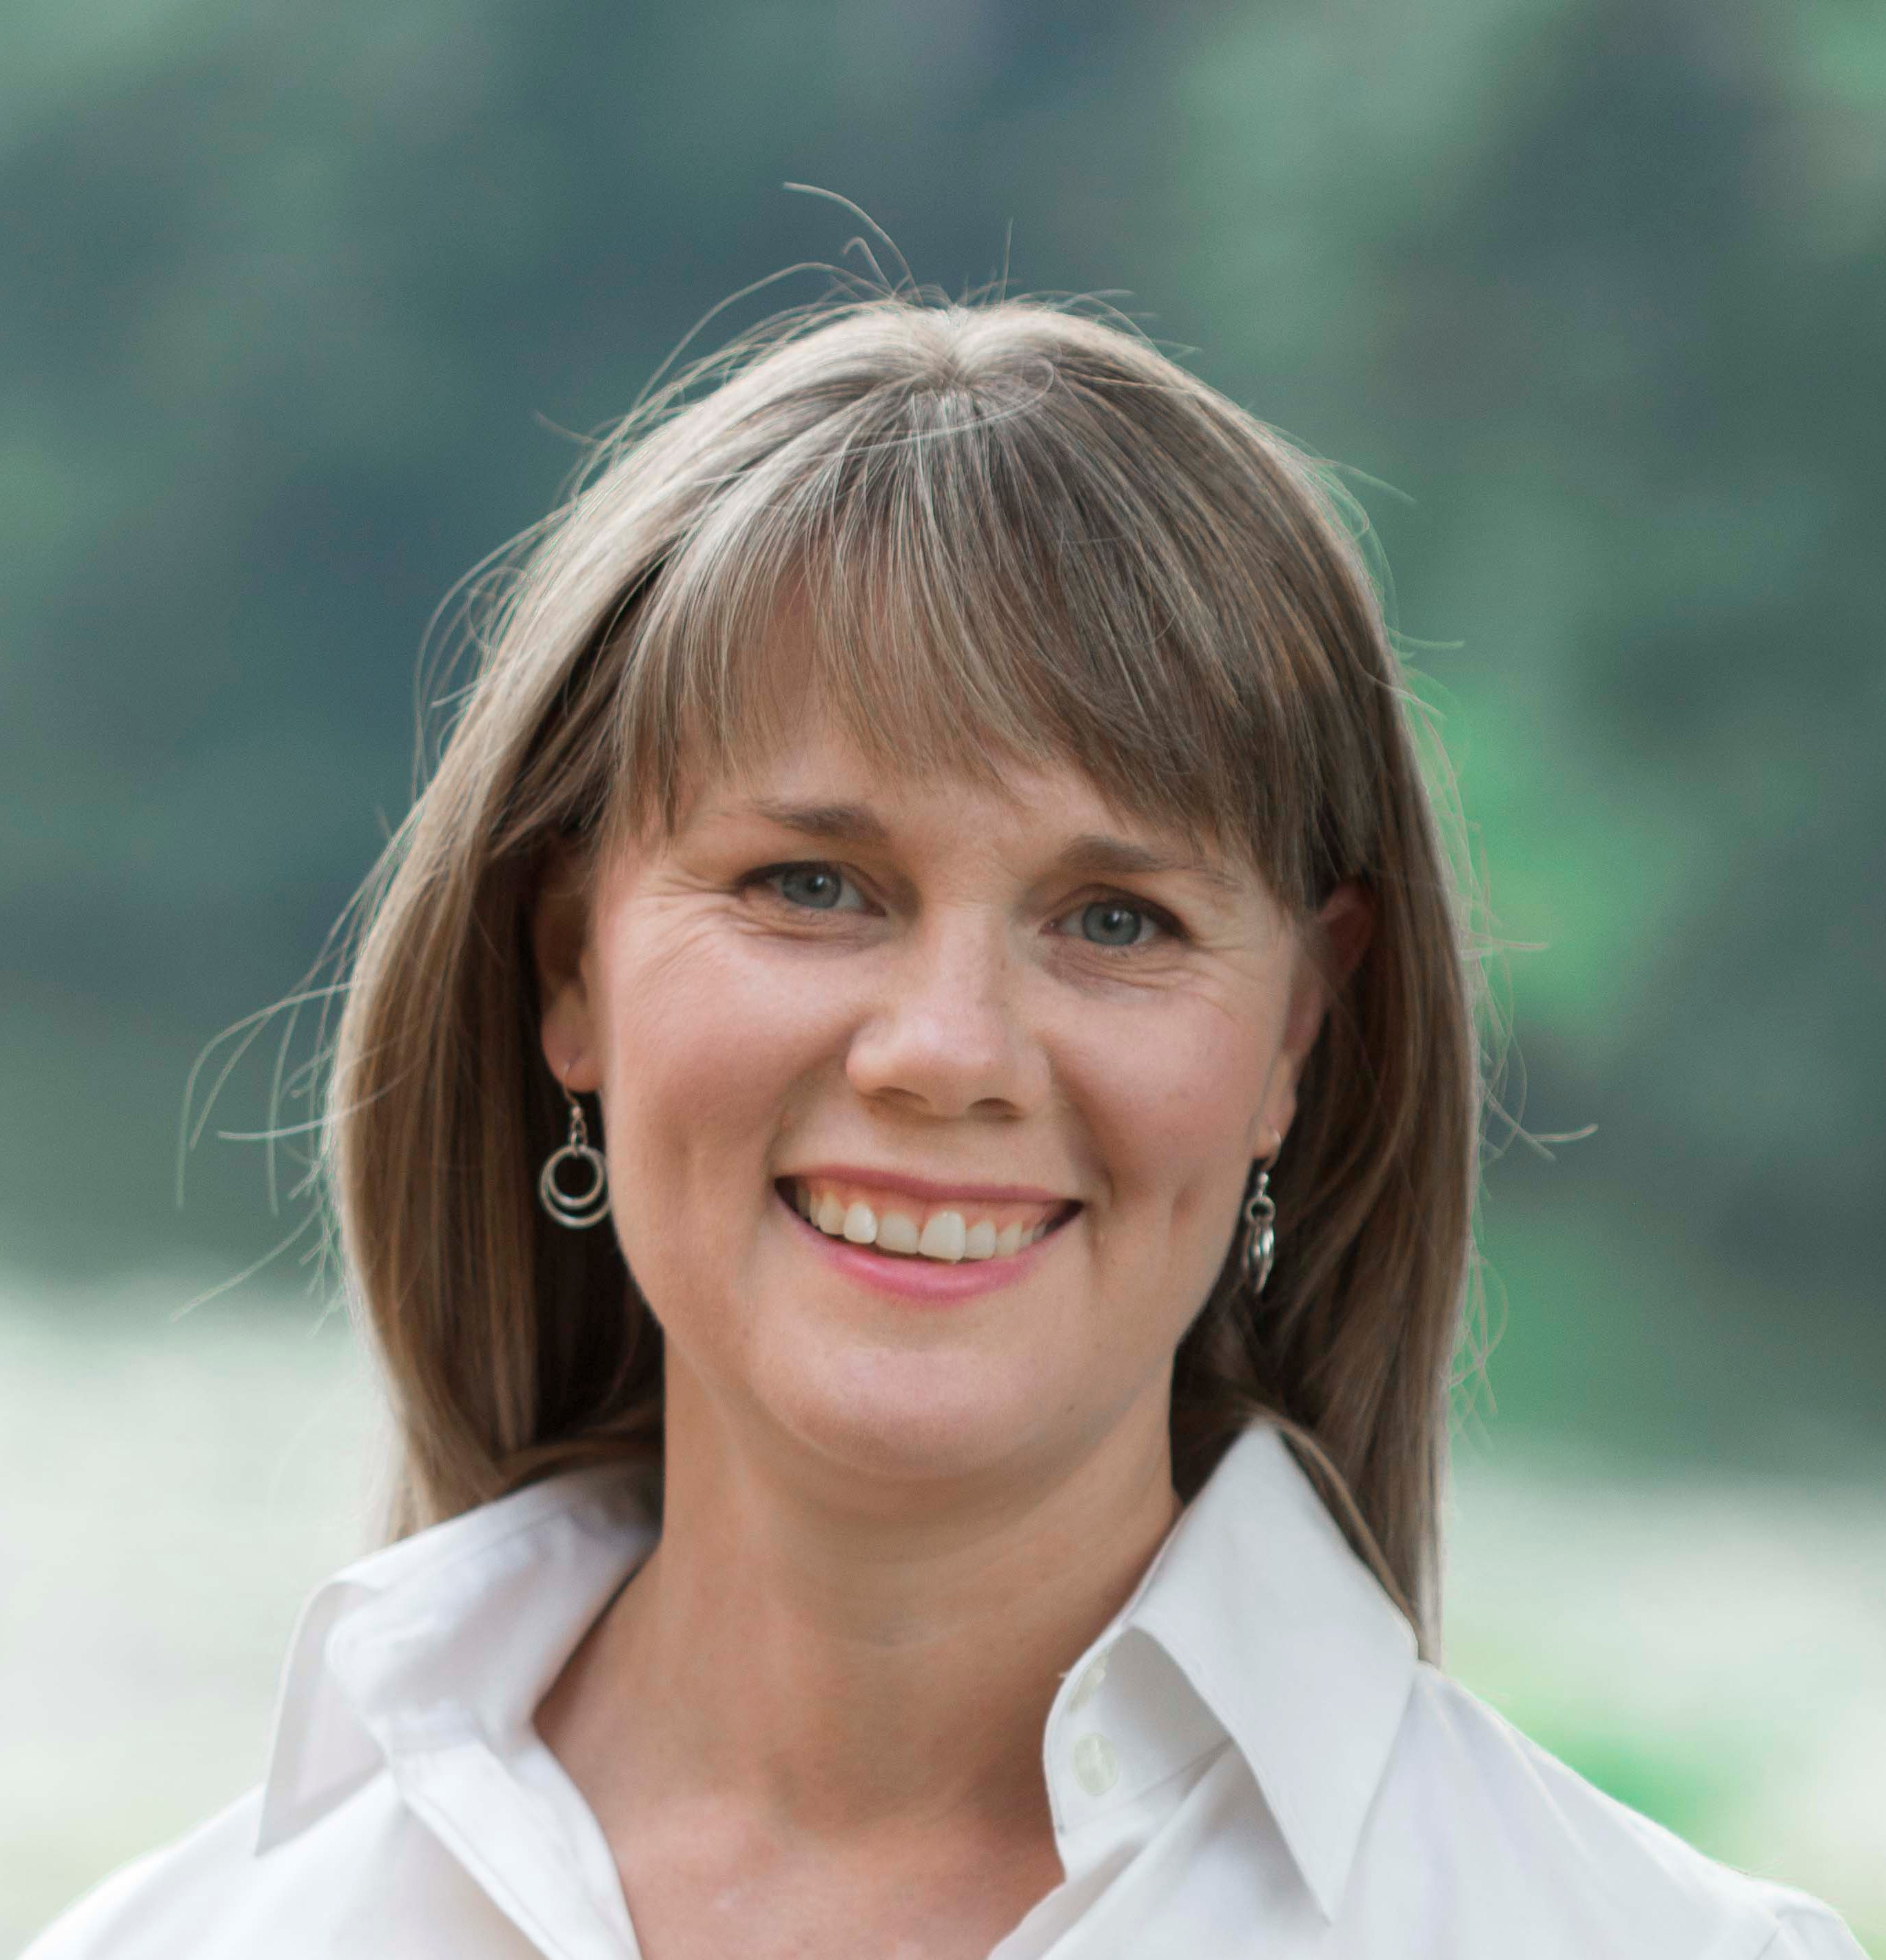 Dayna Kneeland- Your voice to the world